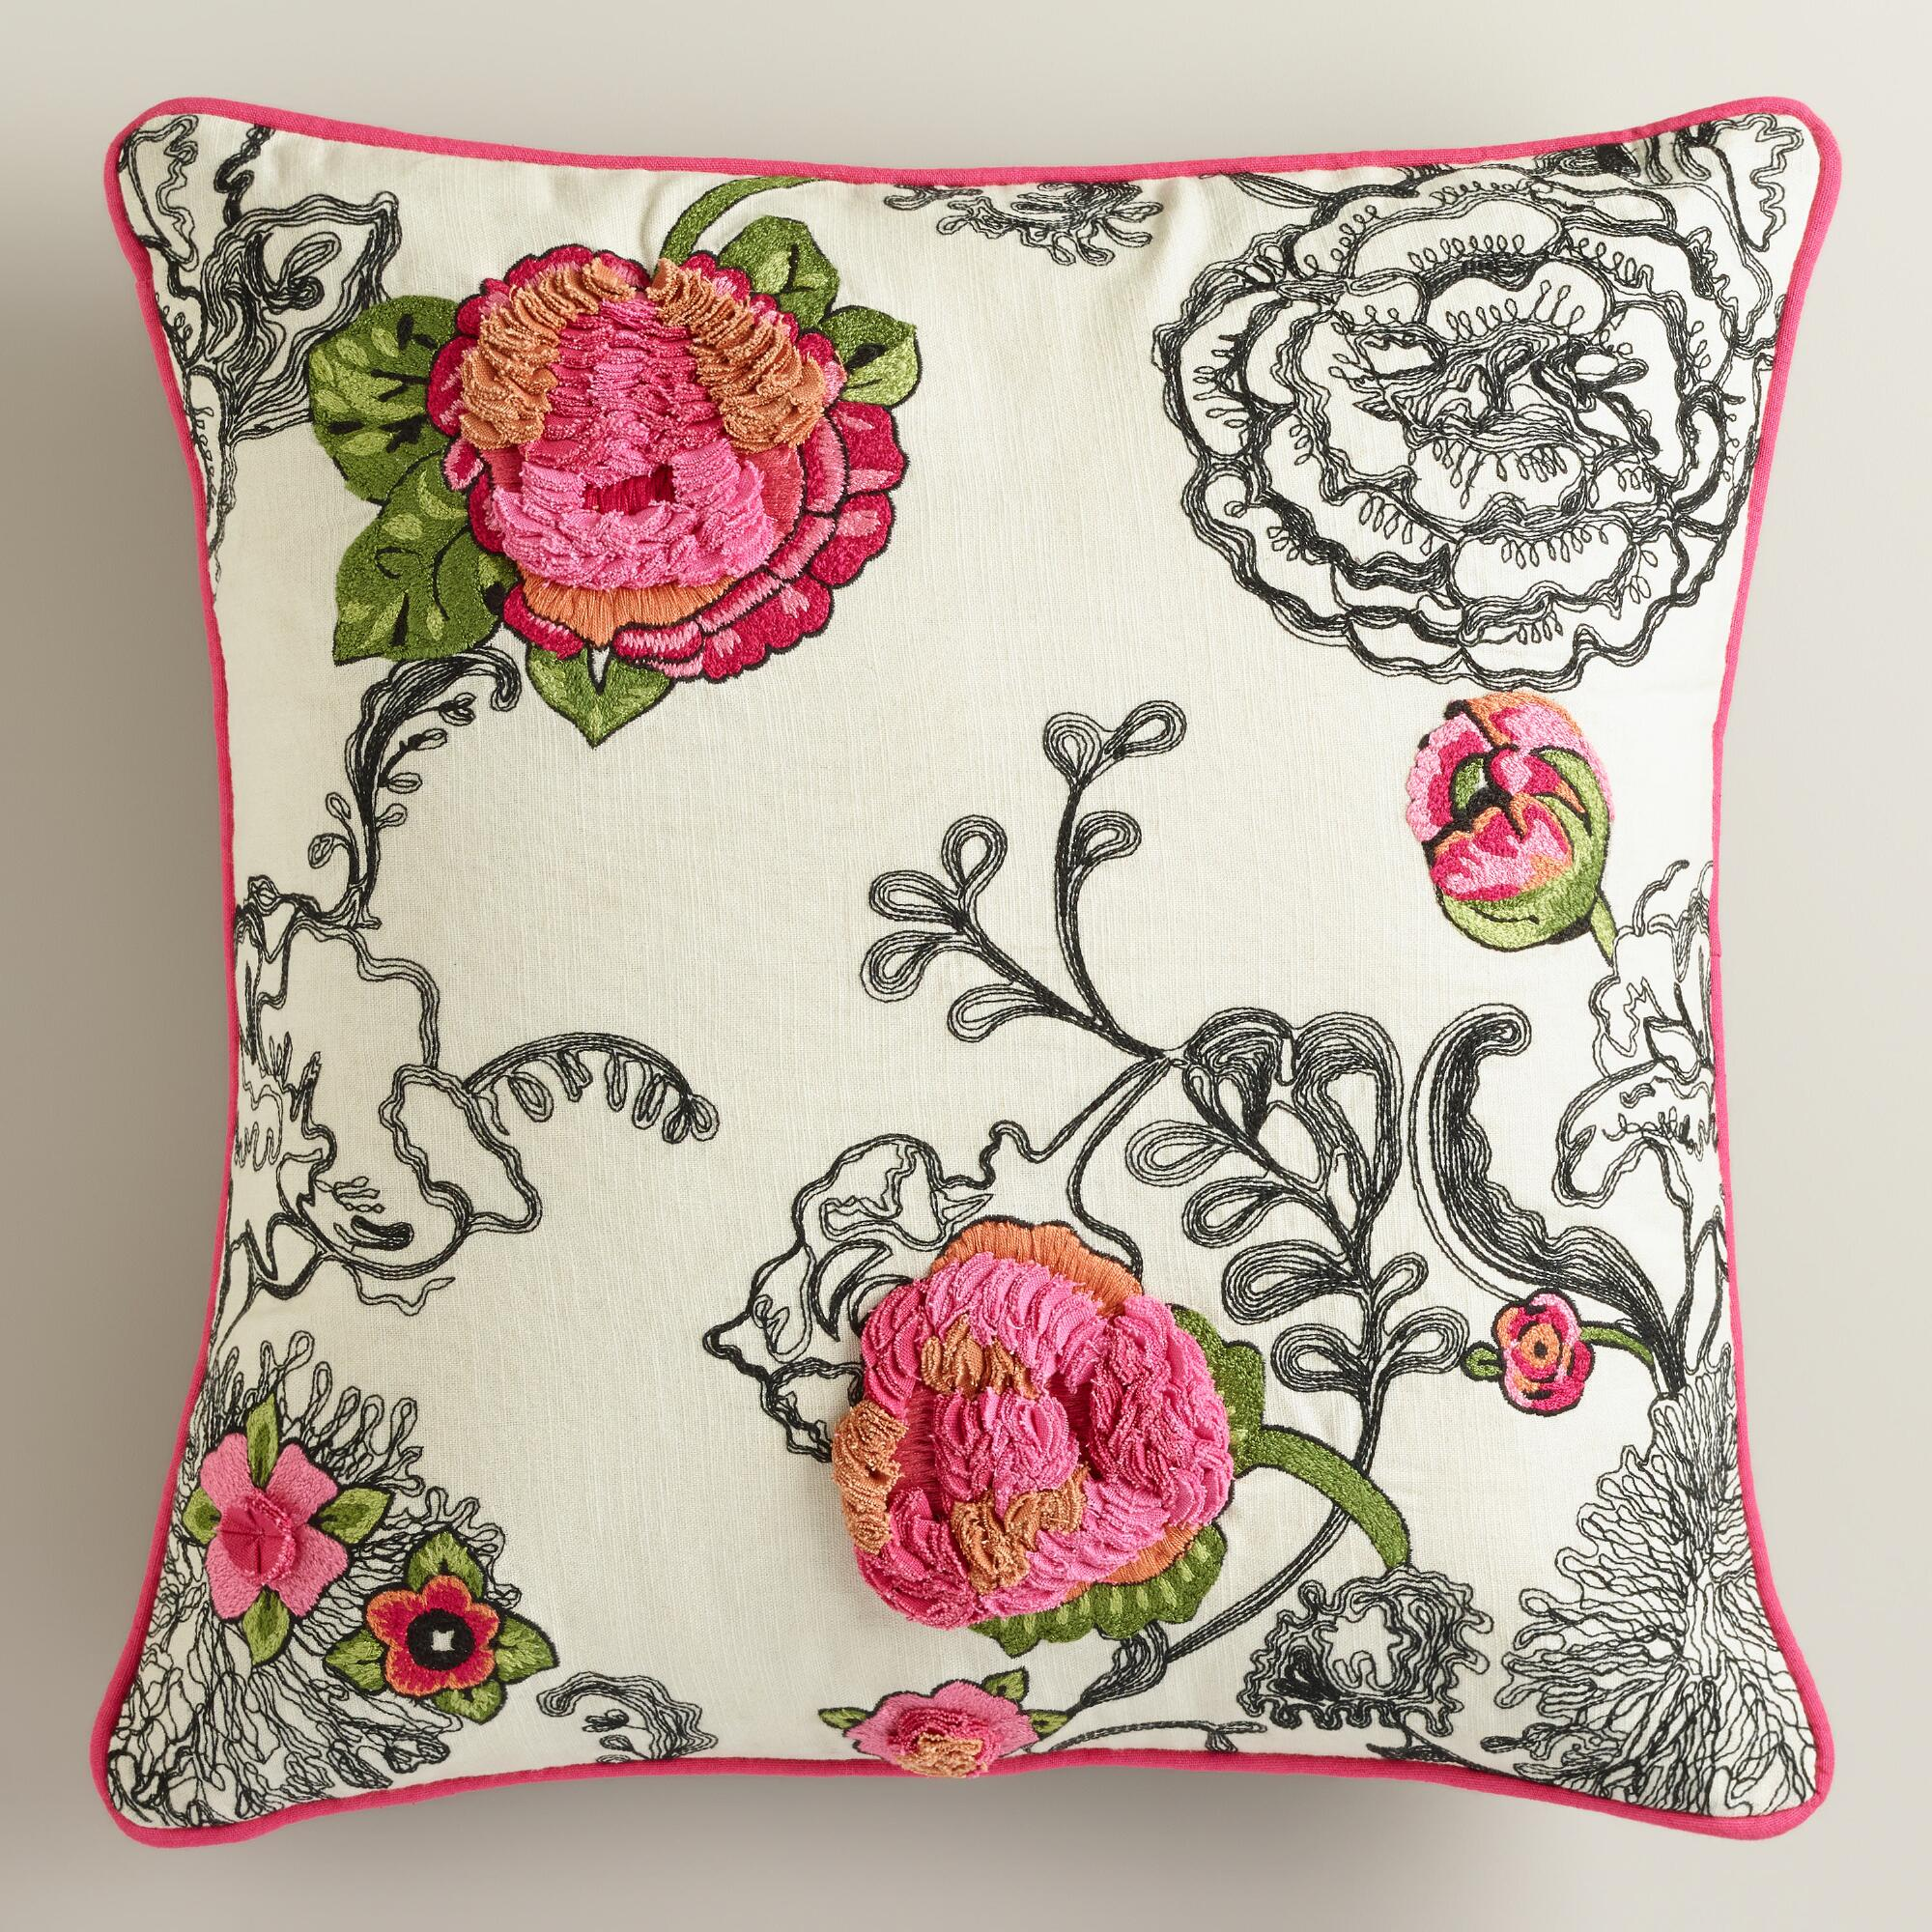 Decorative Pillows Flowers : Floral Embroidered Throw Pillow World Market